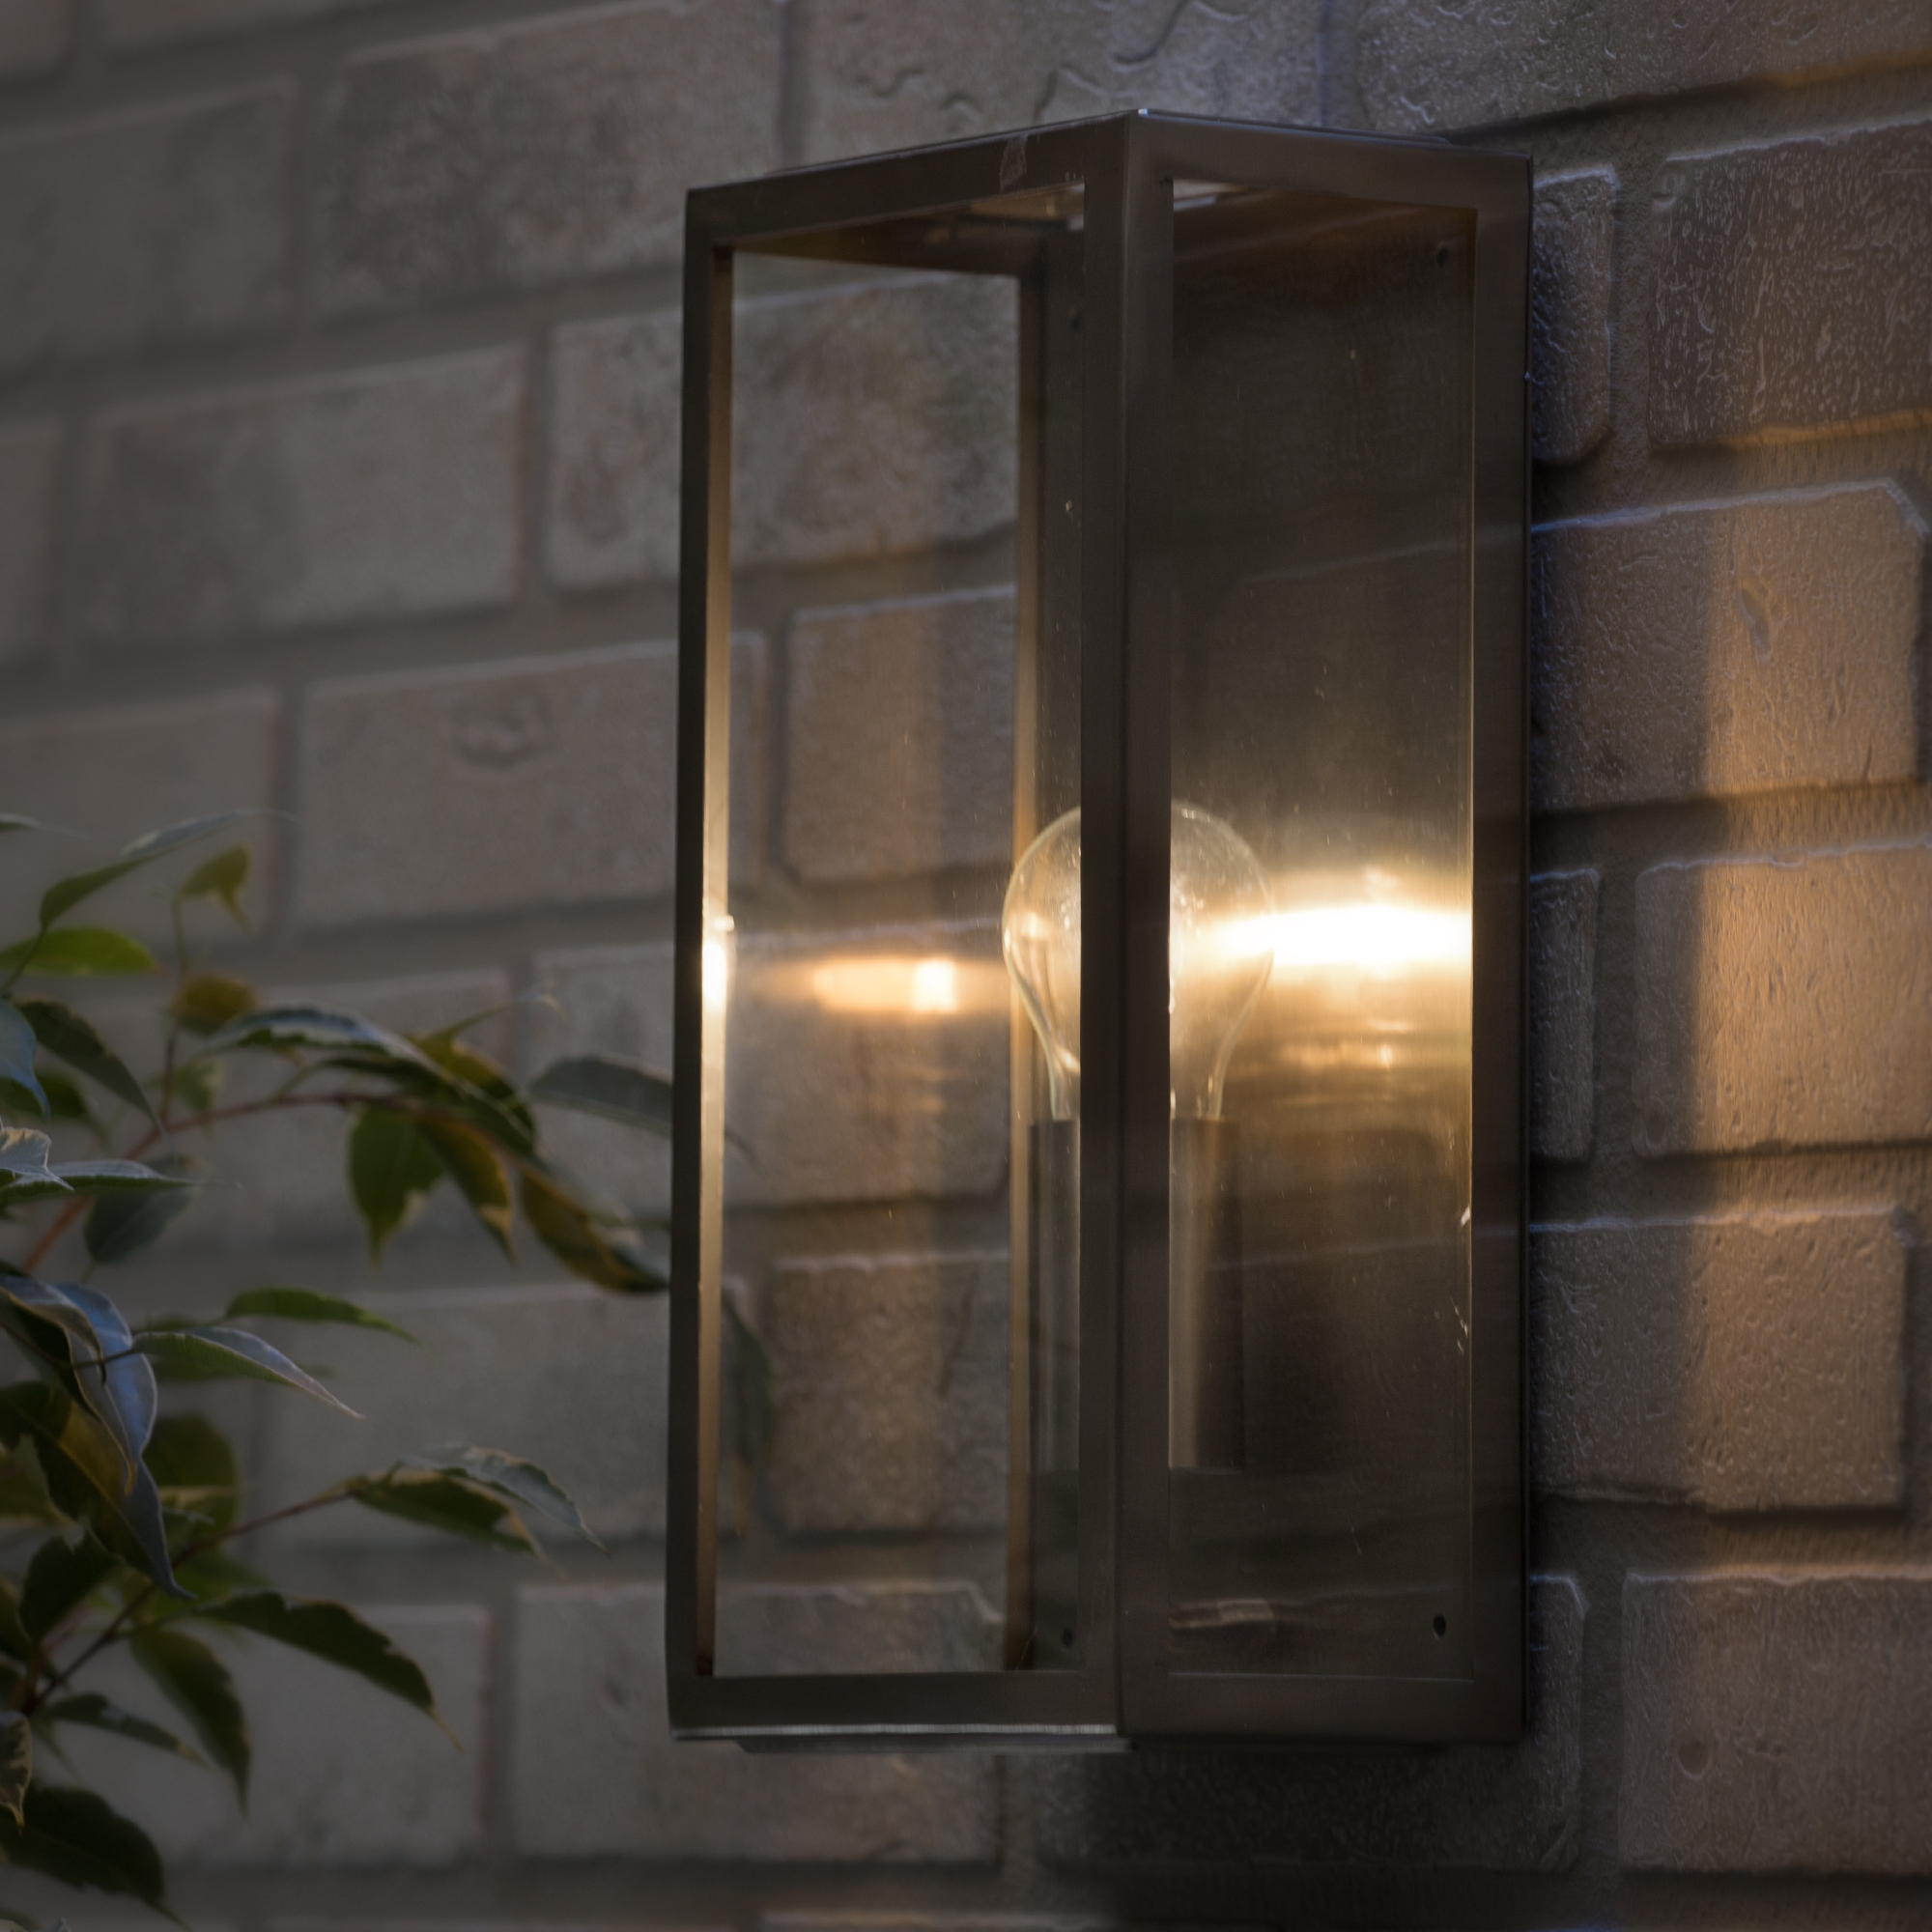 Clearance Exterior Wall Lights : 1 Lt Outdoor Box Wall Lantern Modern Garden Walkway Lighting CLEARANCE Litecraft